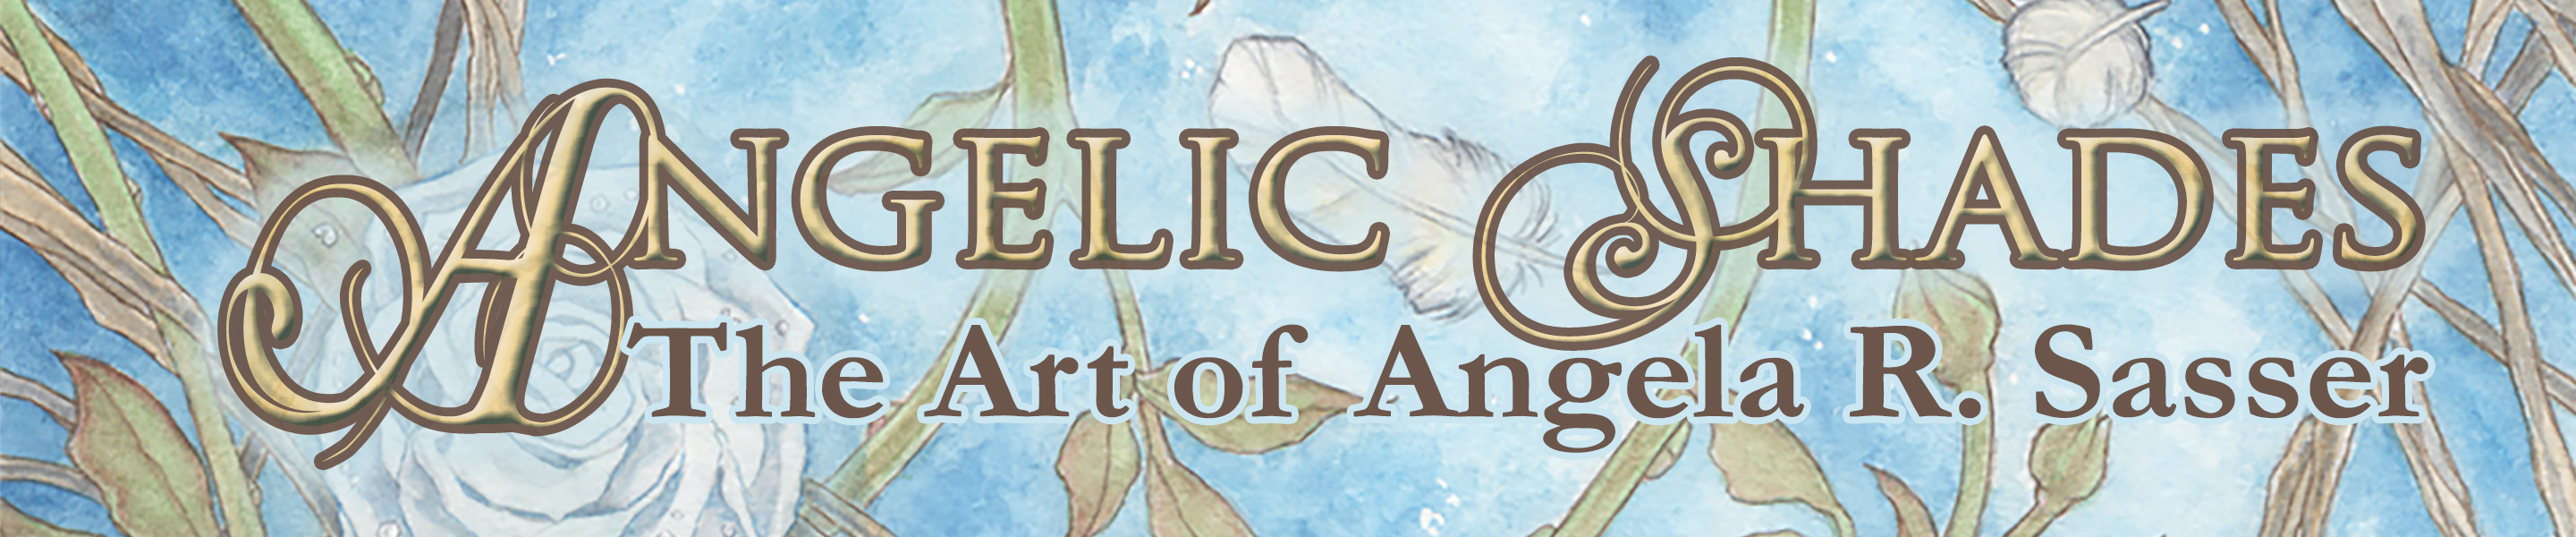 Angelic Shades – Art Nouveau and Angelic Art by Angela R. Sasser